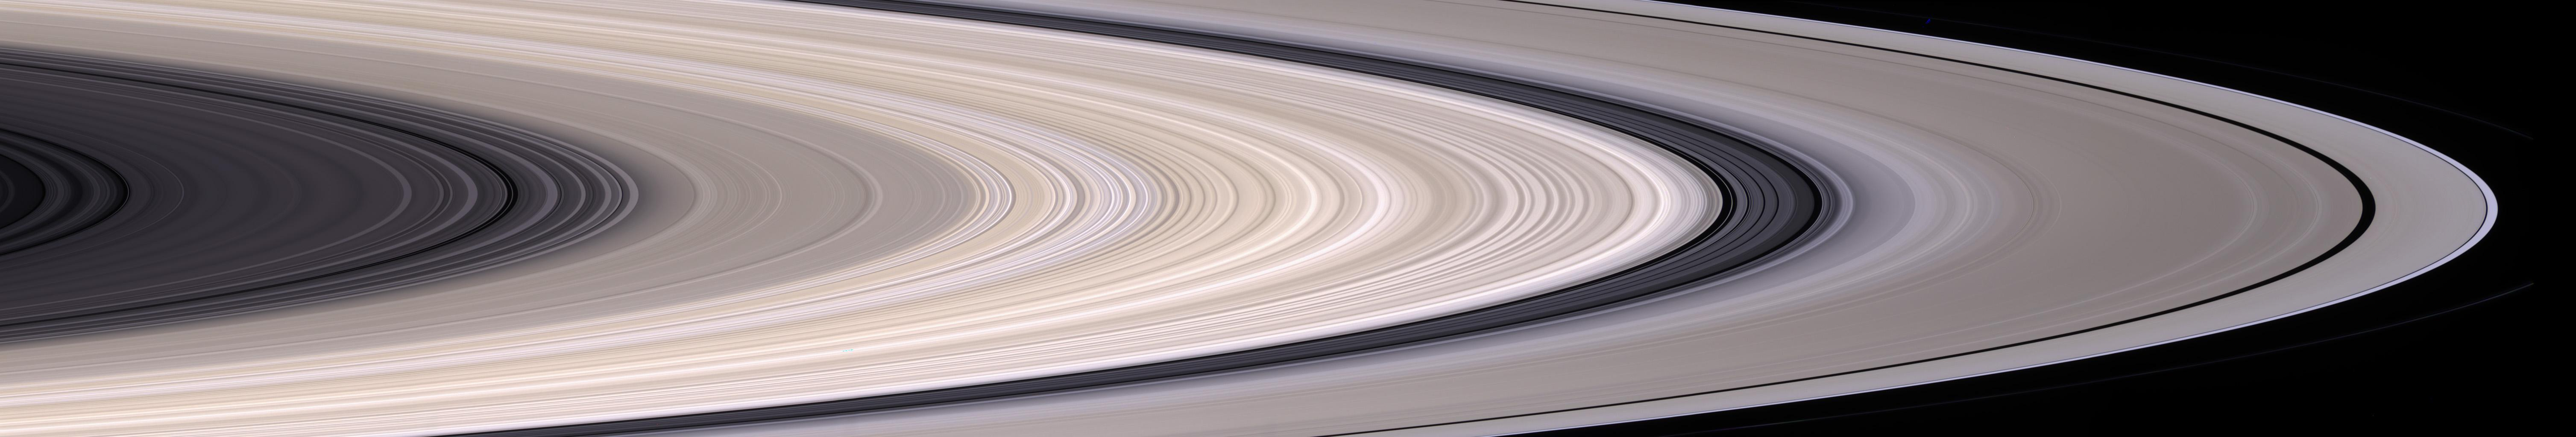 Saturn's most prominent feature, its dazzling ring system, takes center stage in this stunning natural color mosaic which reveals the color and diversity present in this wonder of the solar system.